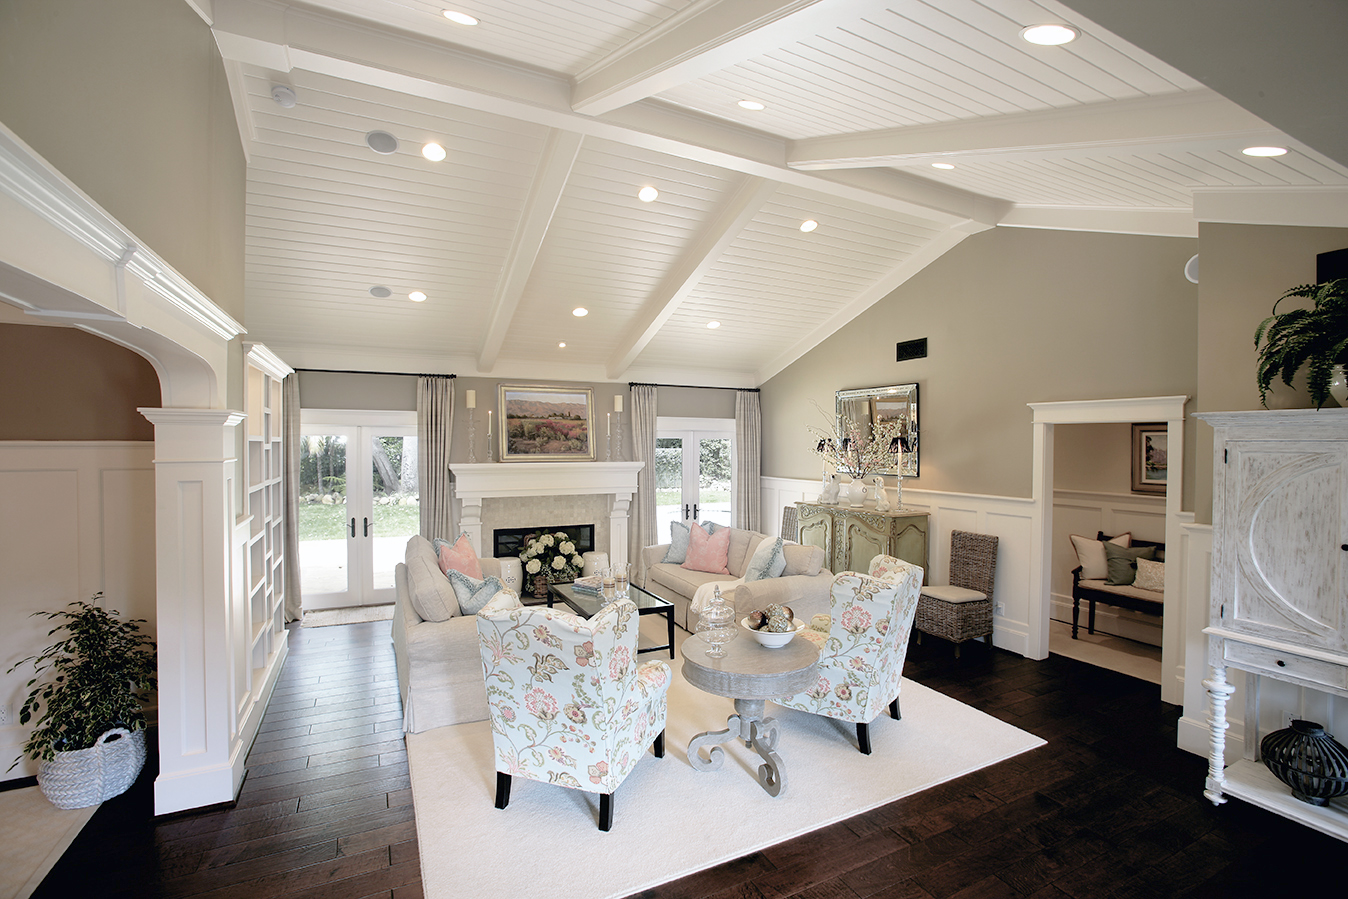 Santa Barbara Design & Build